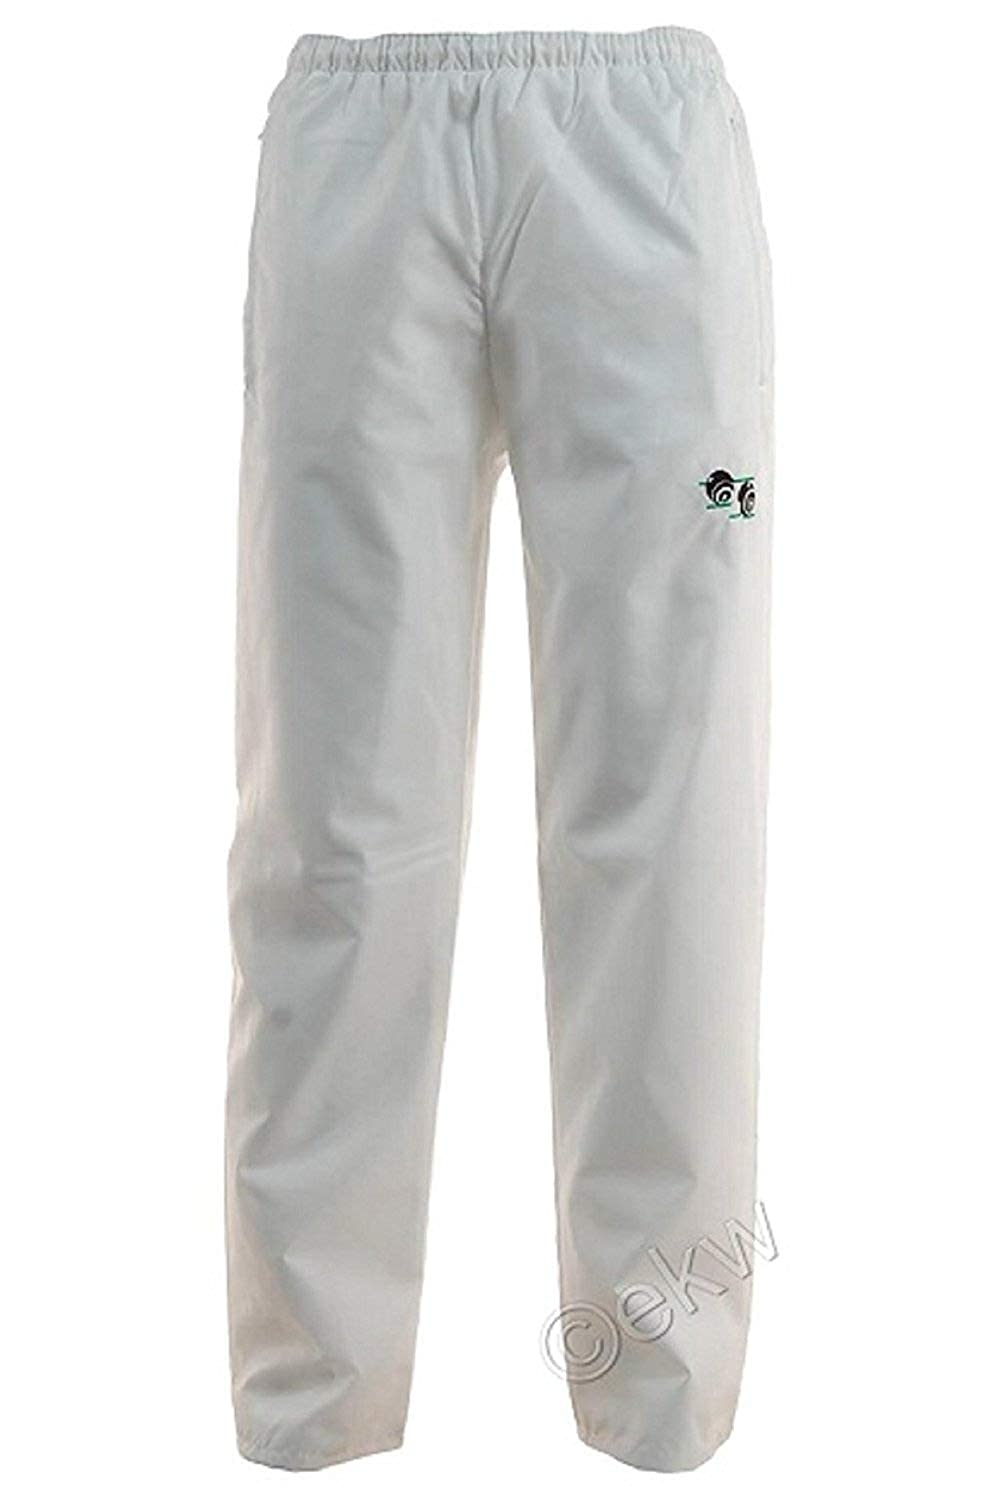 New Bowls Lawn Bowling Unisex Men's Woman's Waterproof Trousers with Bowls Logo Elasticated adjustable waist Free Shipping (Medium, White)